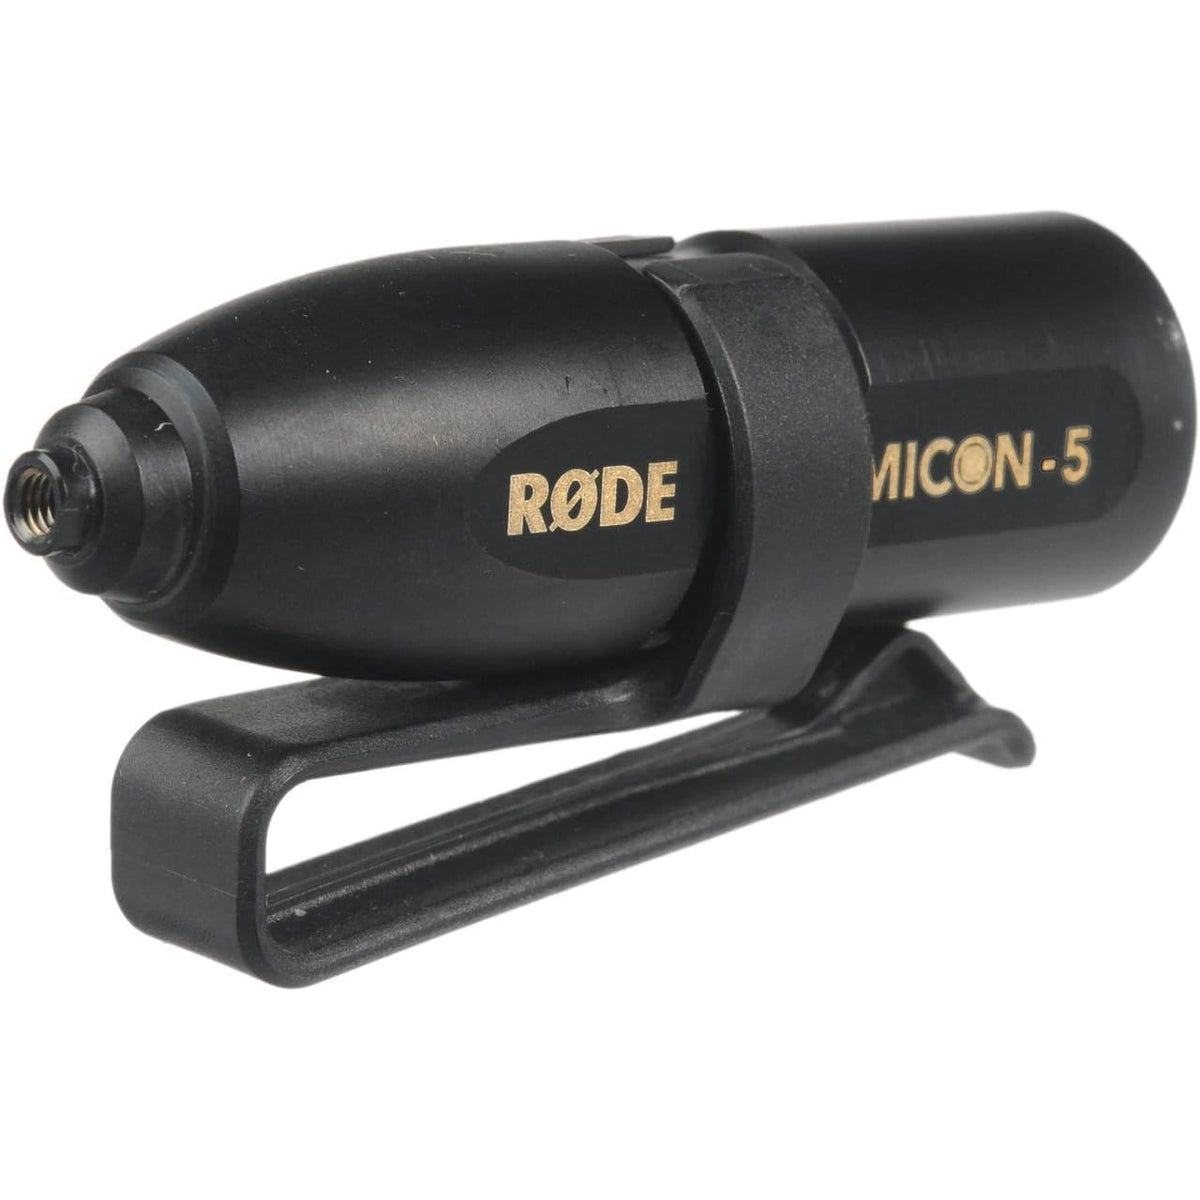 Rode MiCon-5 Connector